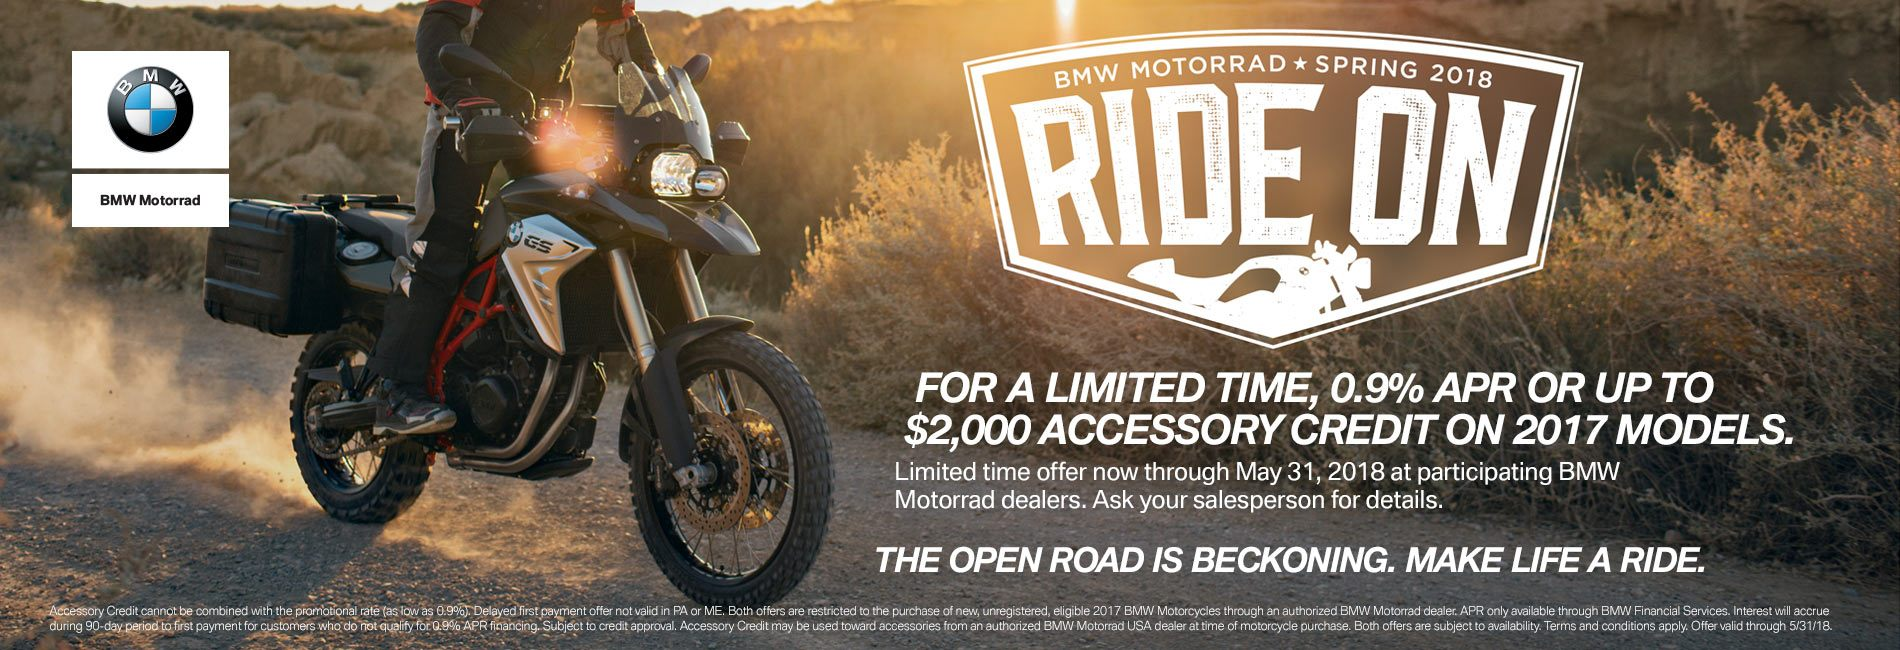 RIDE ON MOTO EVENT